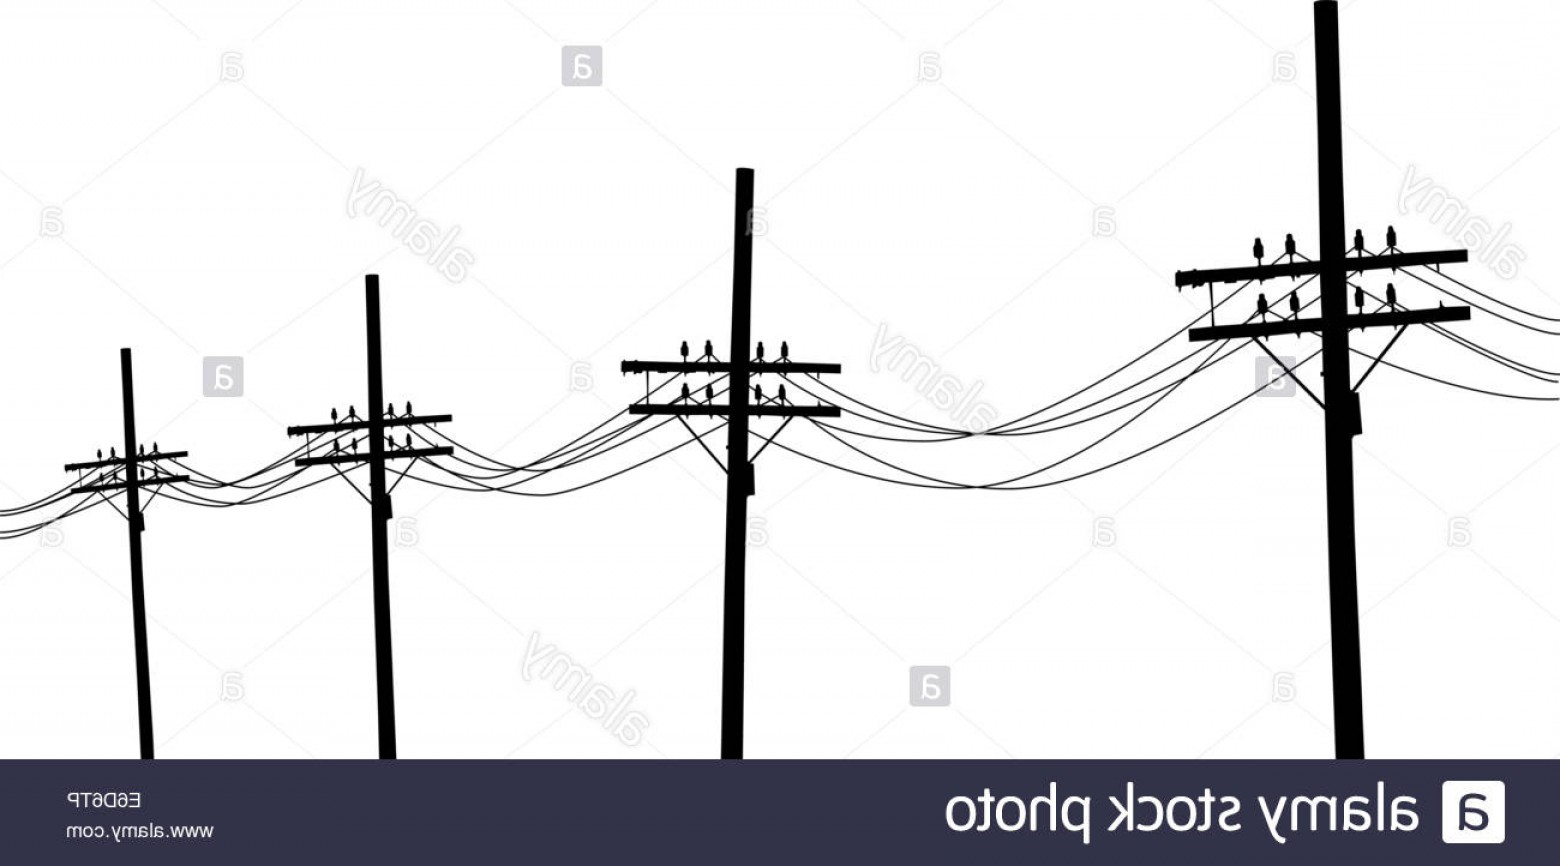 Vector Pole: Stock Photo Vector Illustration Of A Line Of Utility Poles In Silhouette